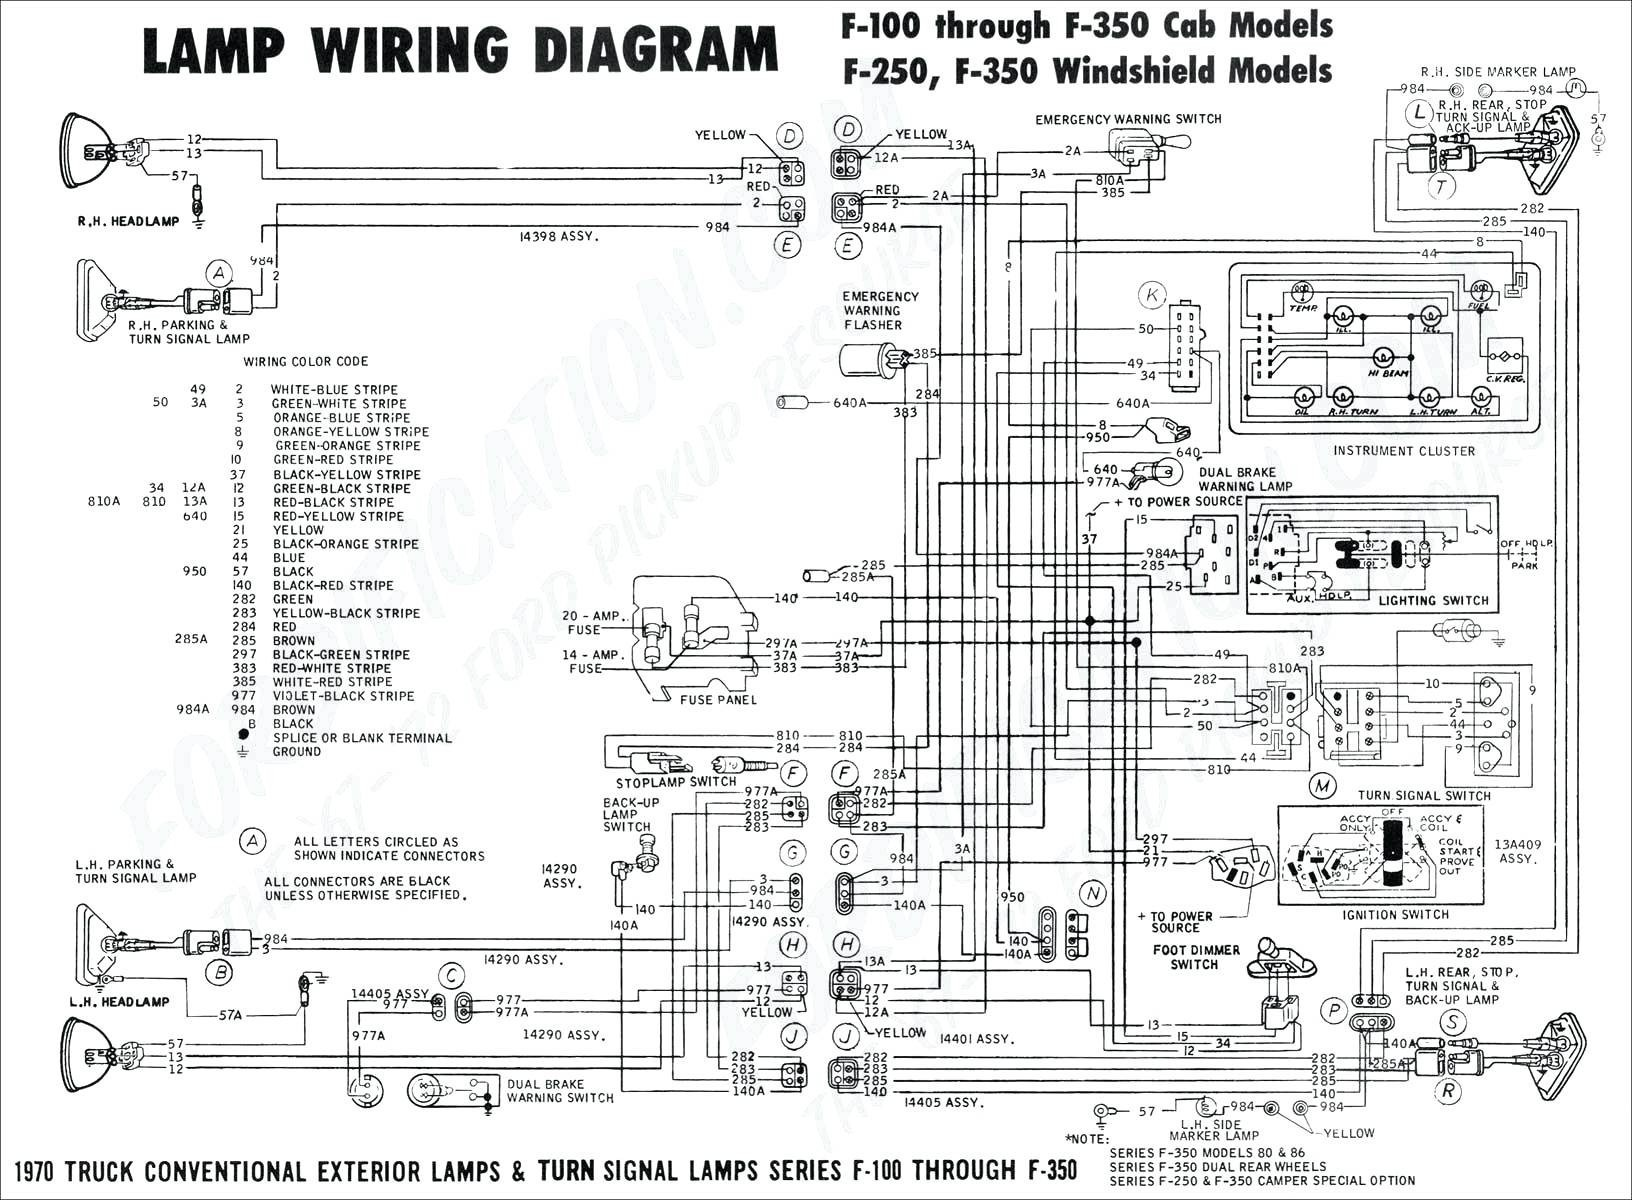 1995 ford F150 Parts Diagram 1997 ford F100 Wiring Wiring Diagram • Of 1995 ford F150 Parts Diagram 2006 ford F 150 Transmissions Parts Diagram Data Wiring Diagrams •